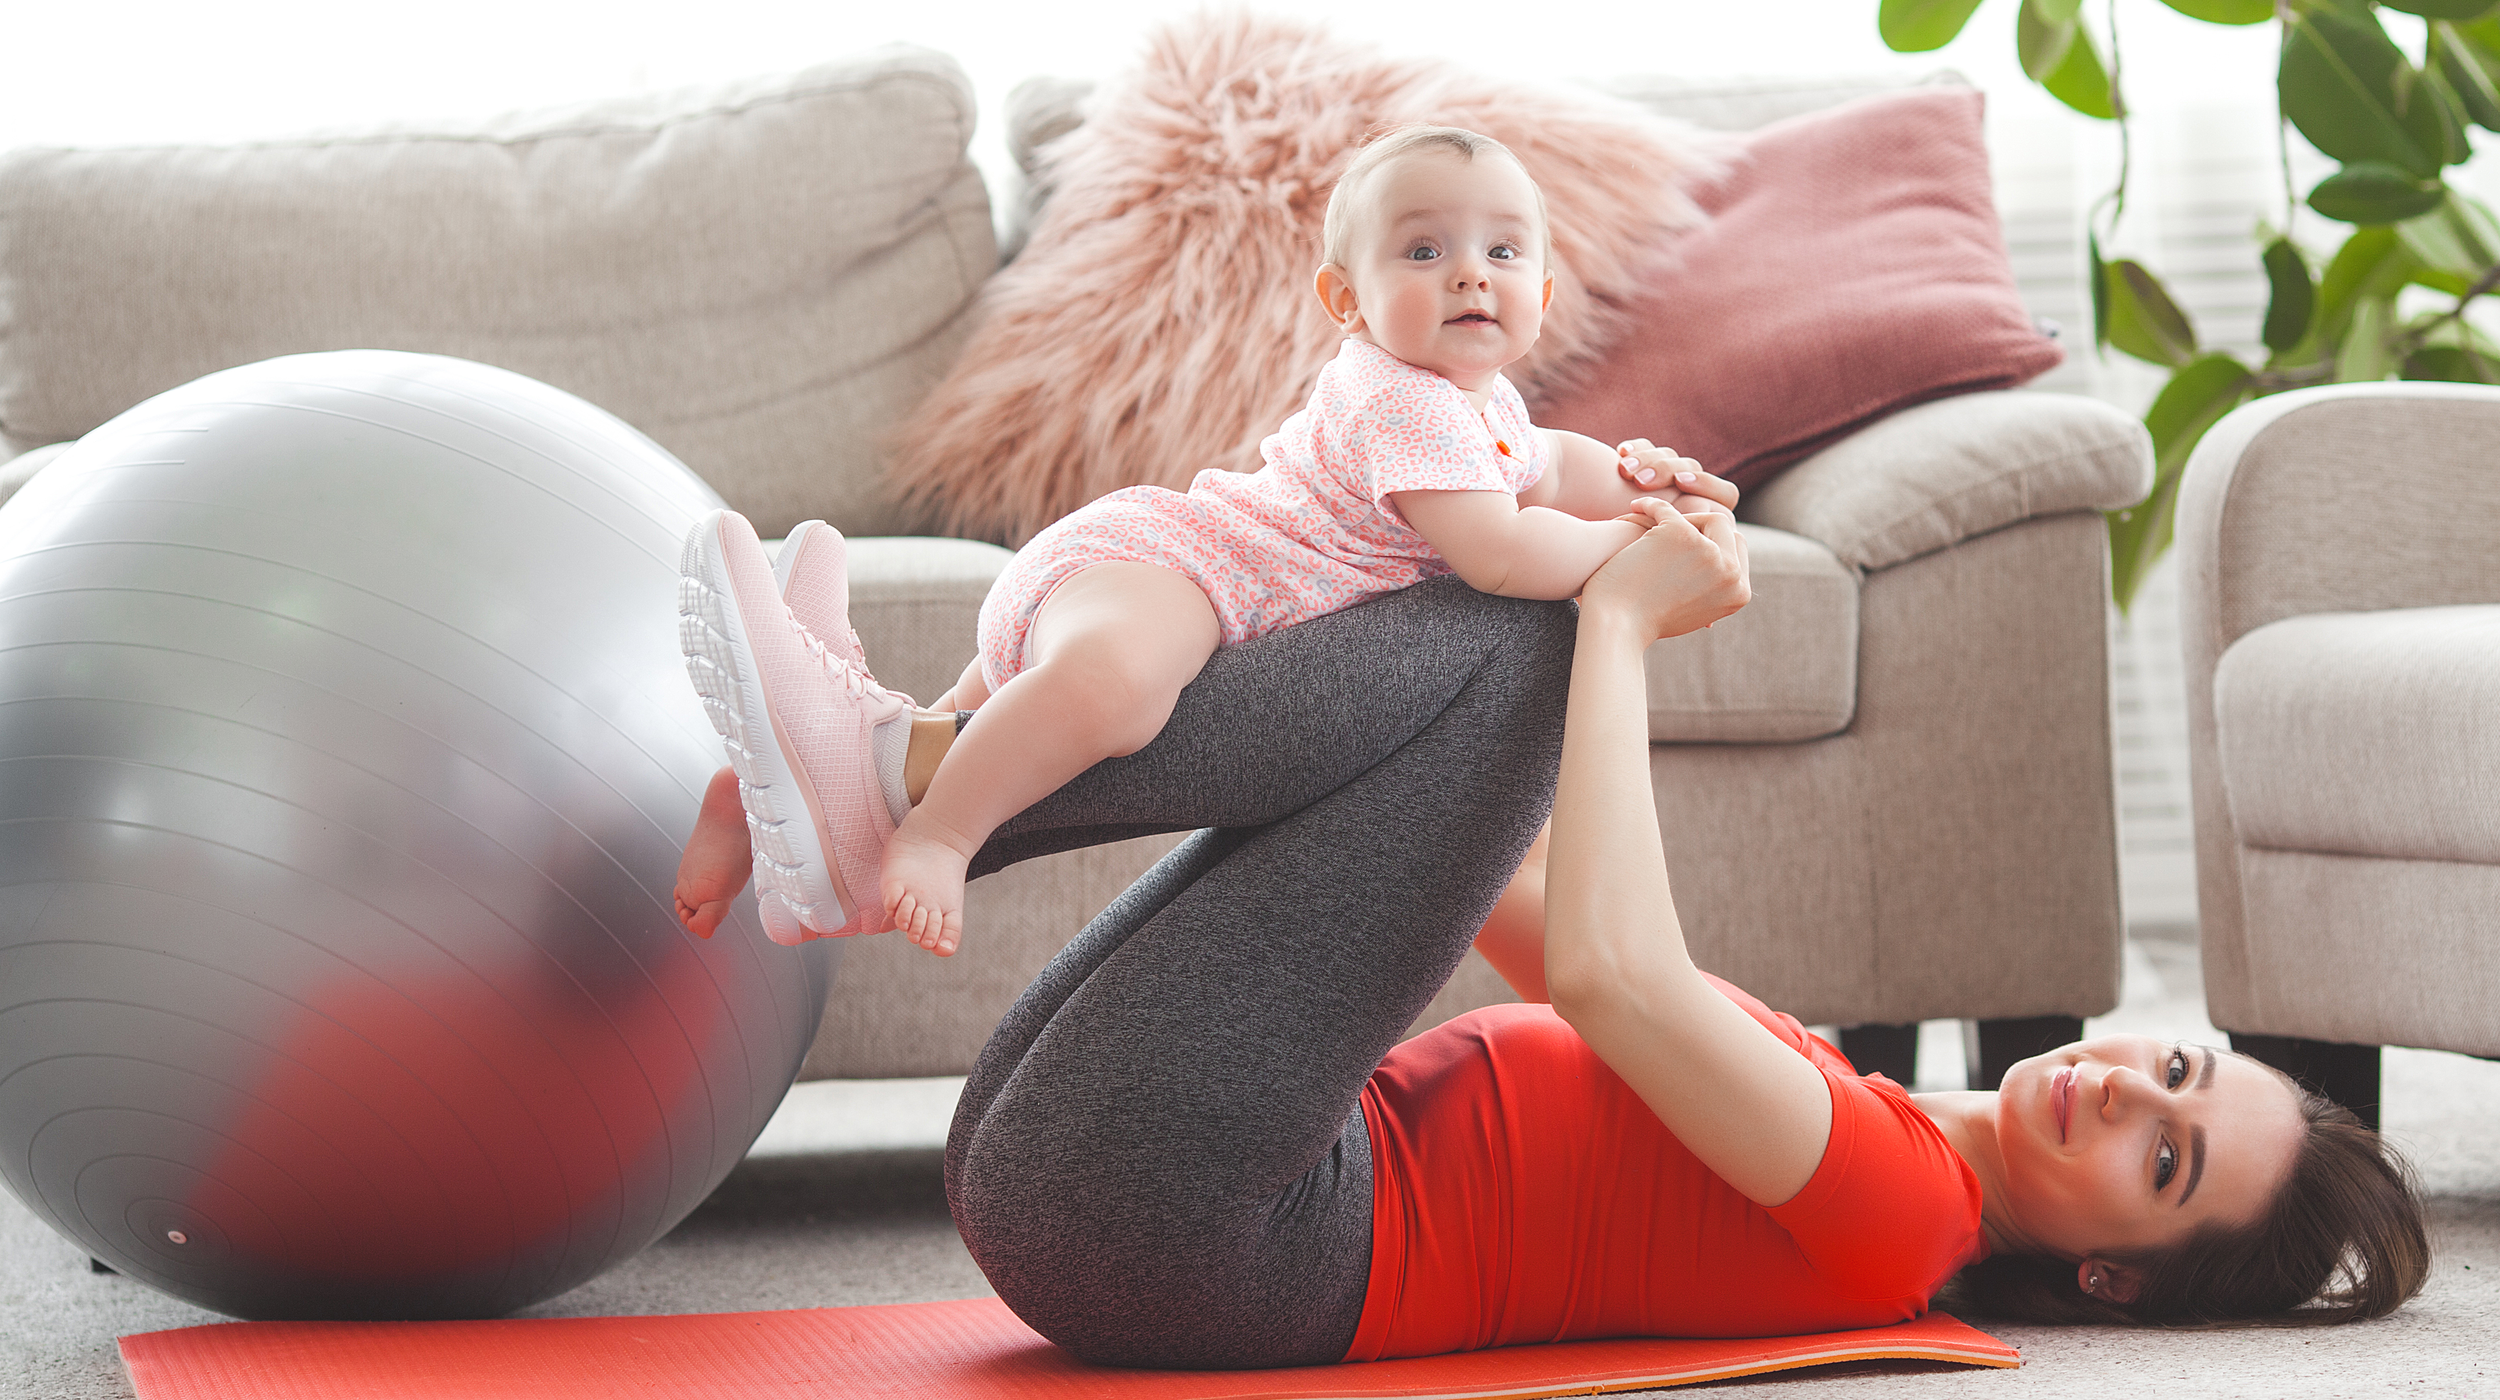 Losing Weight After Pregnancy: 5 Steps to Follow